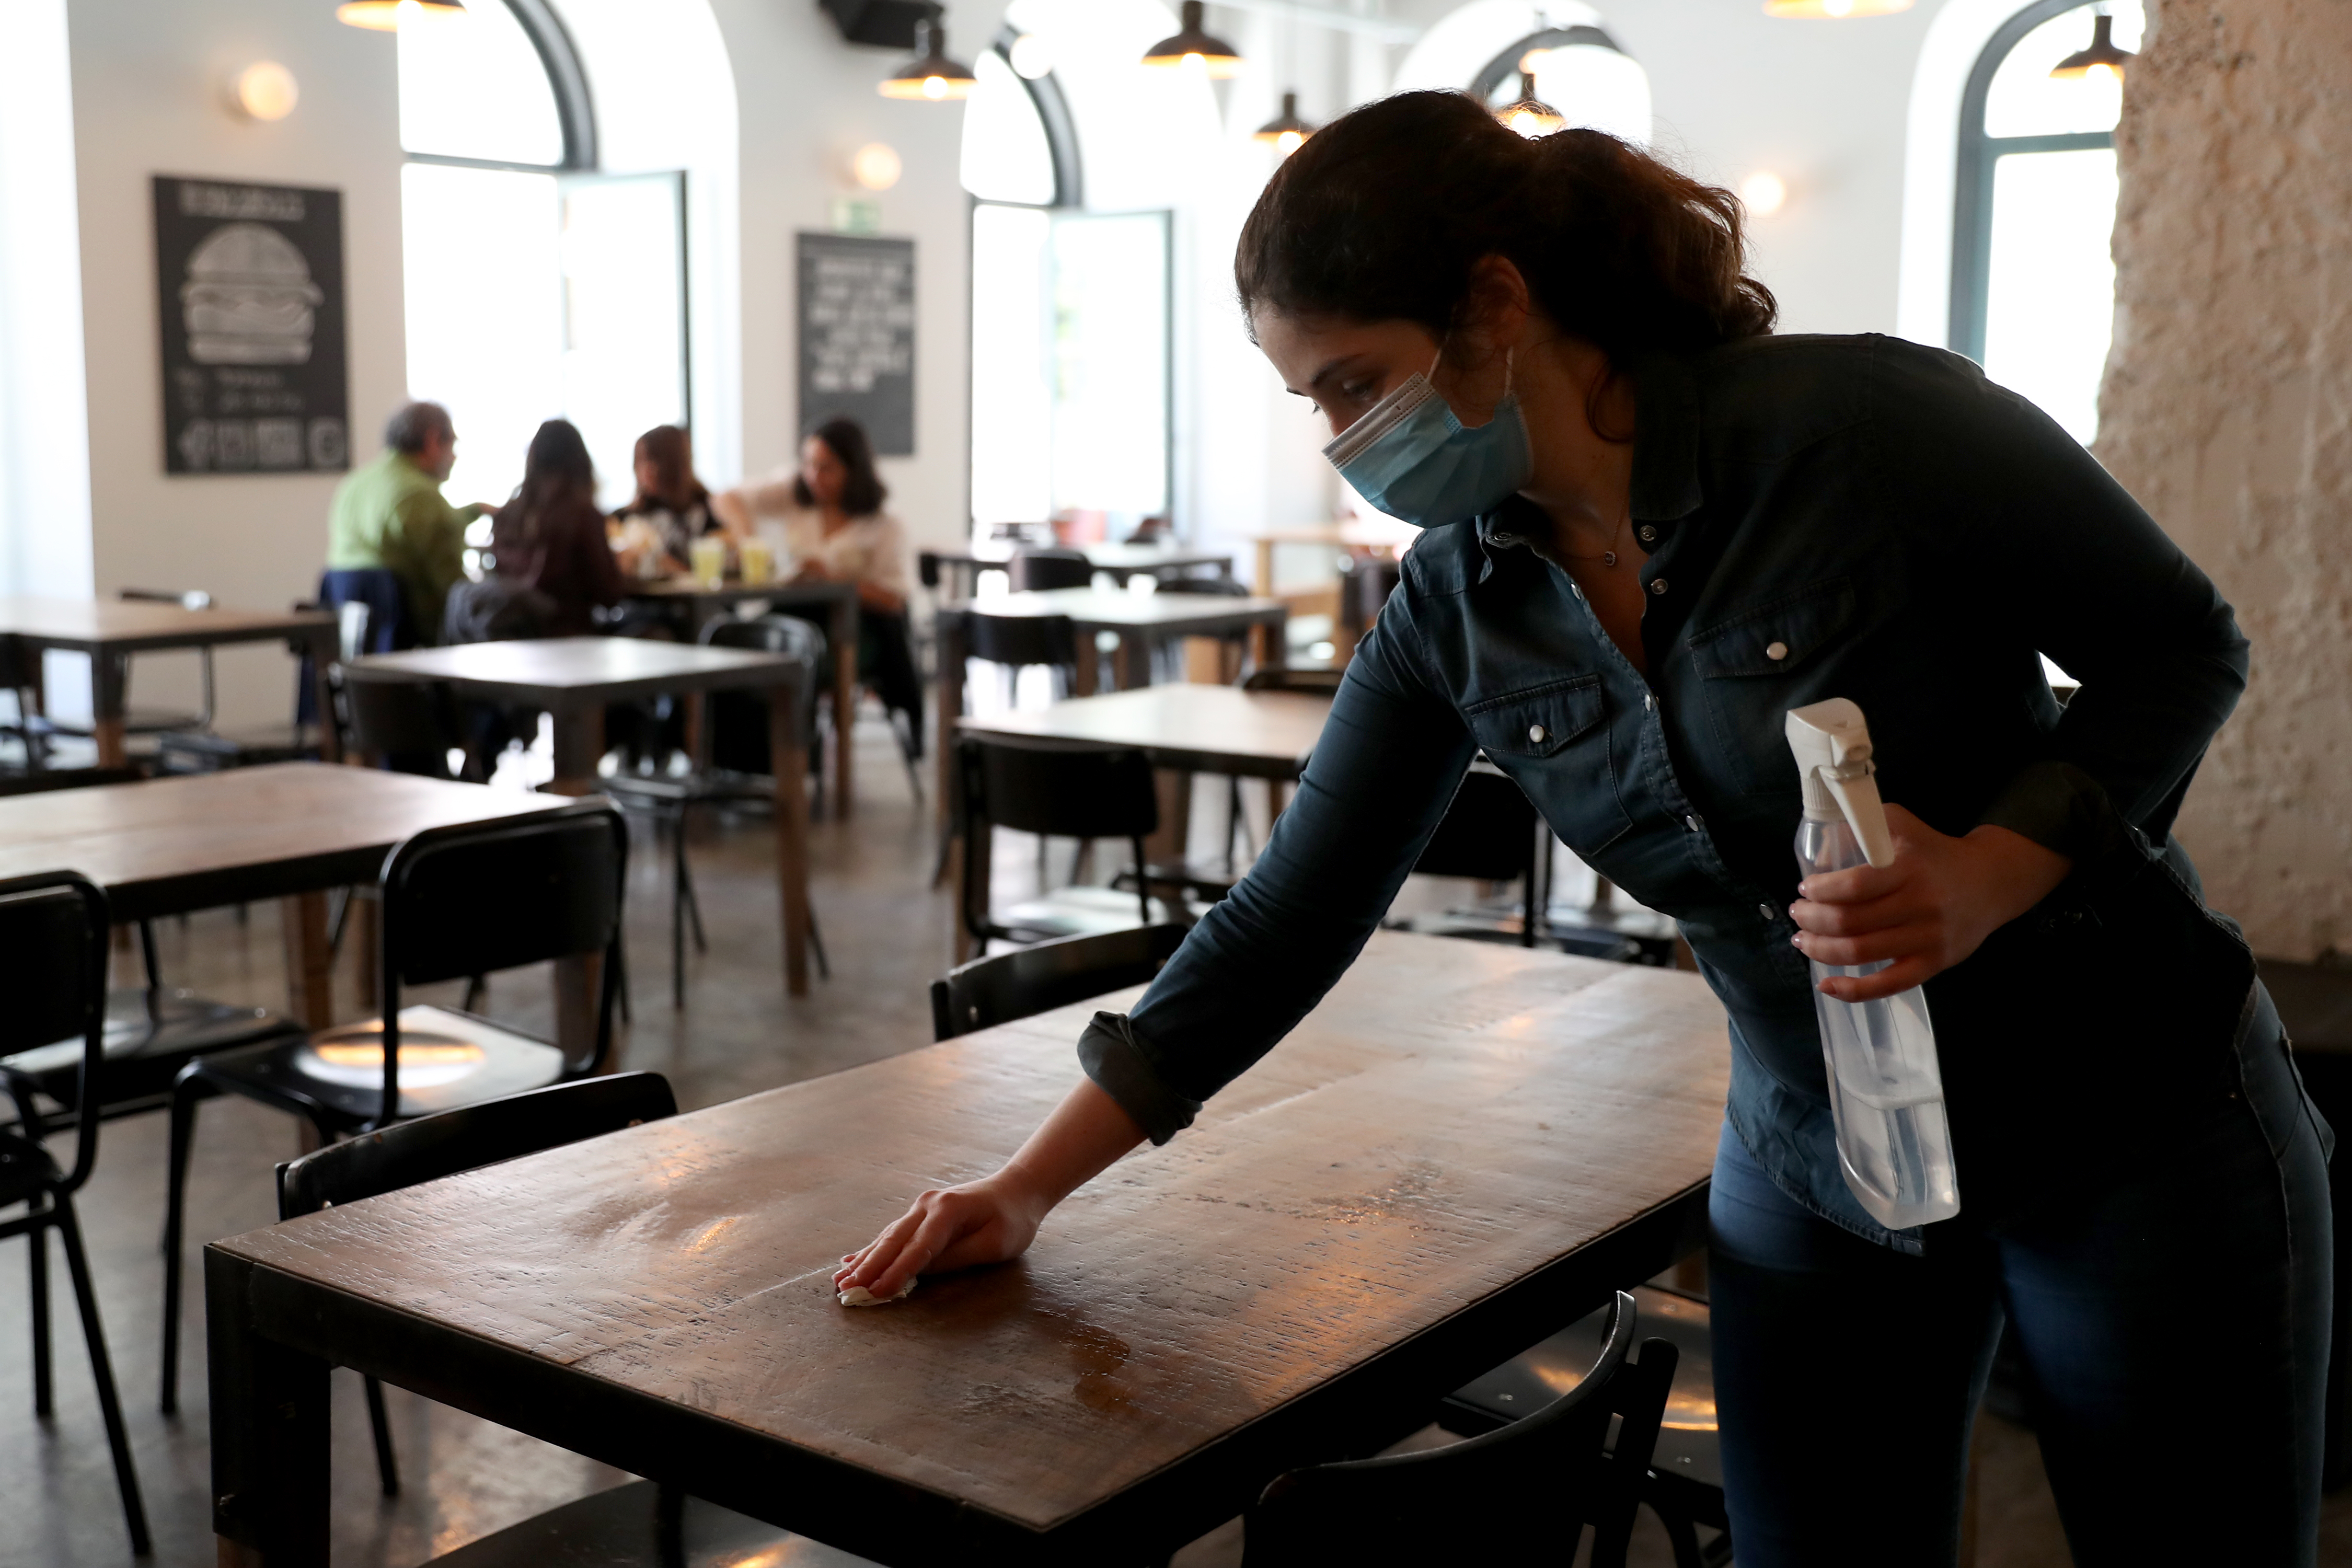 A woman wearing a mask wipes off a table inside a restaurant.